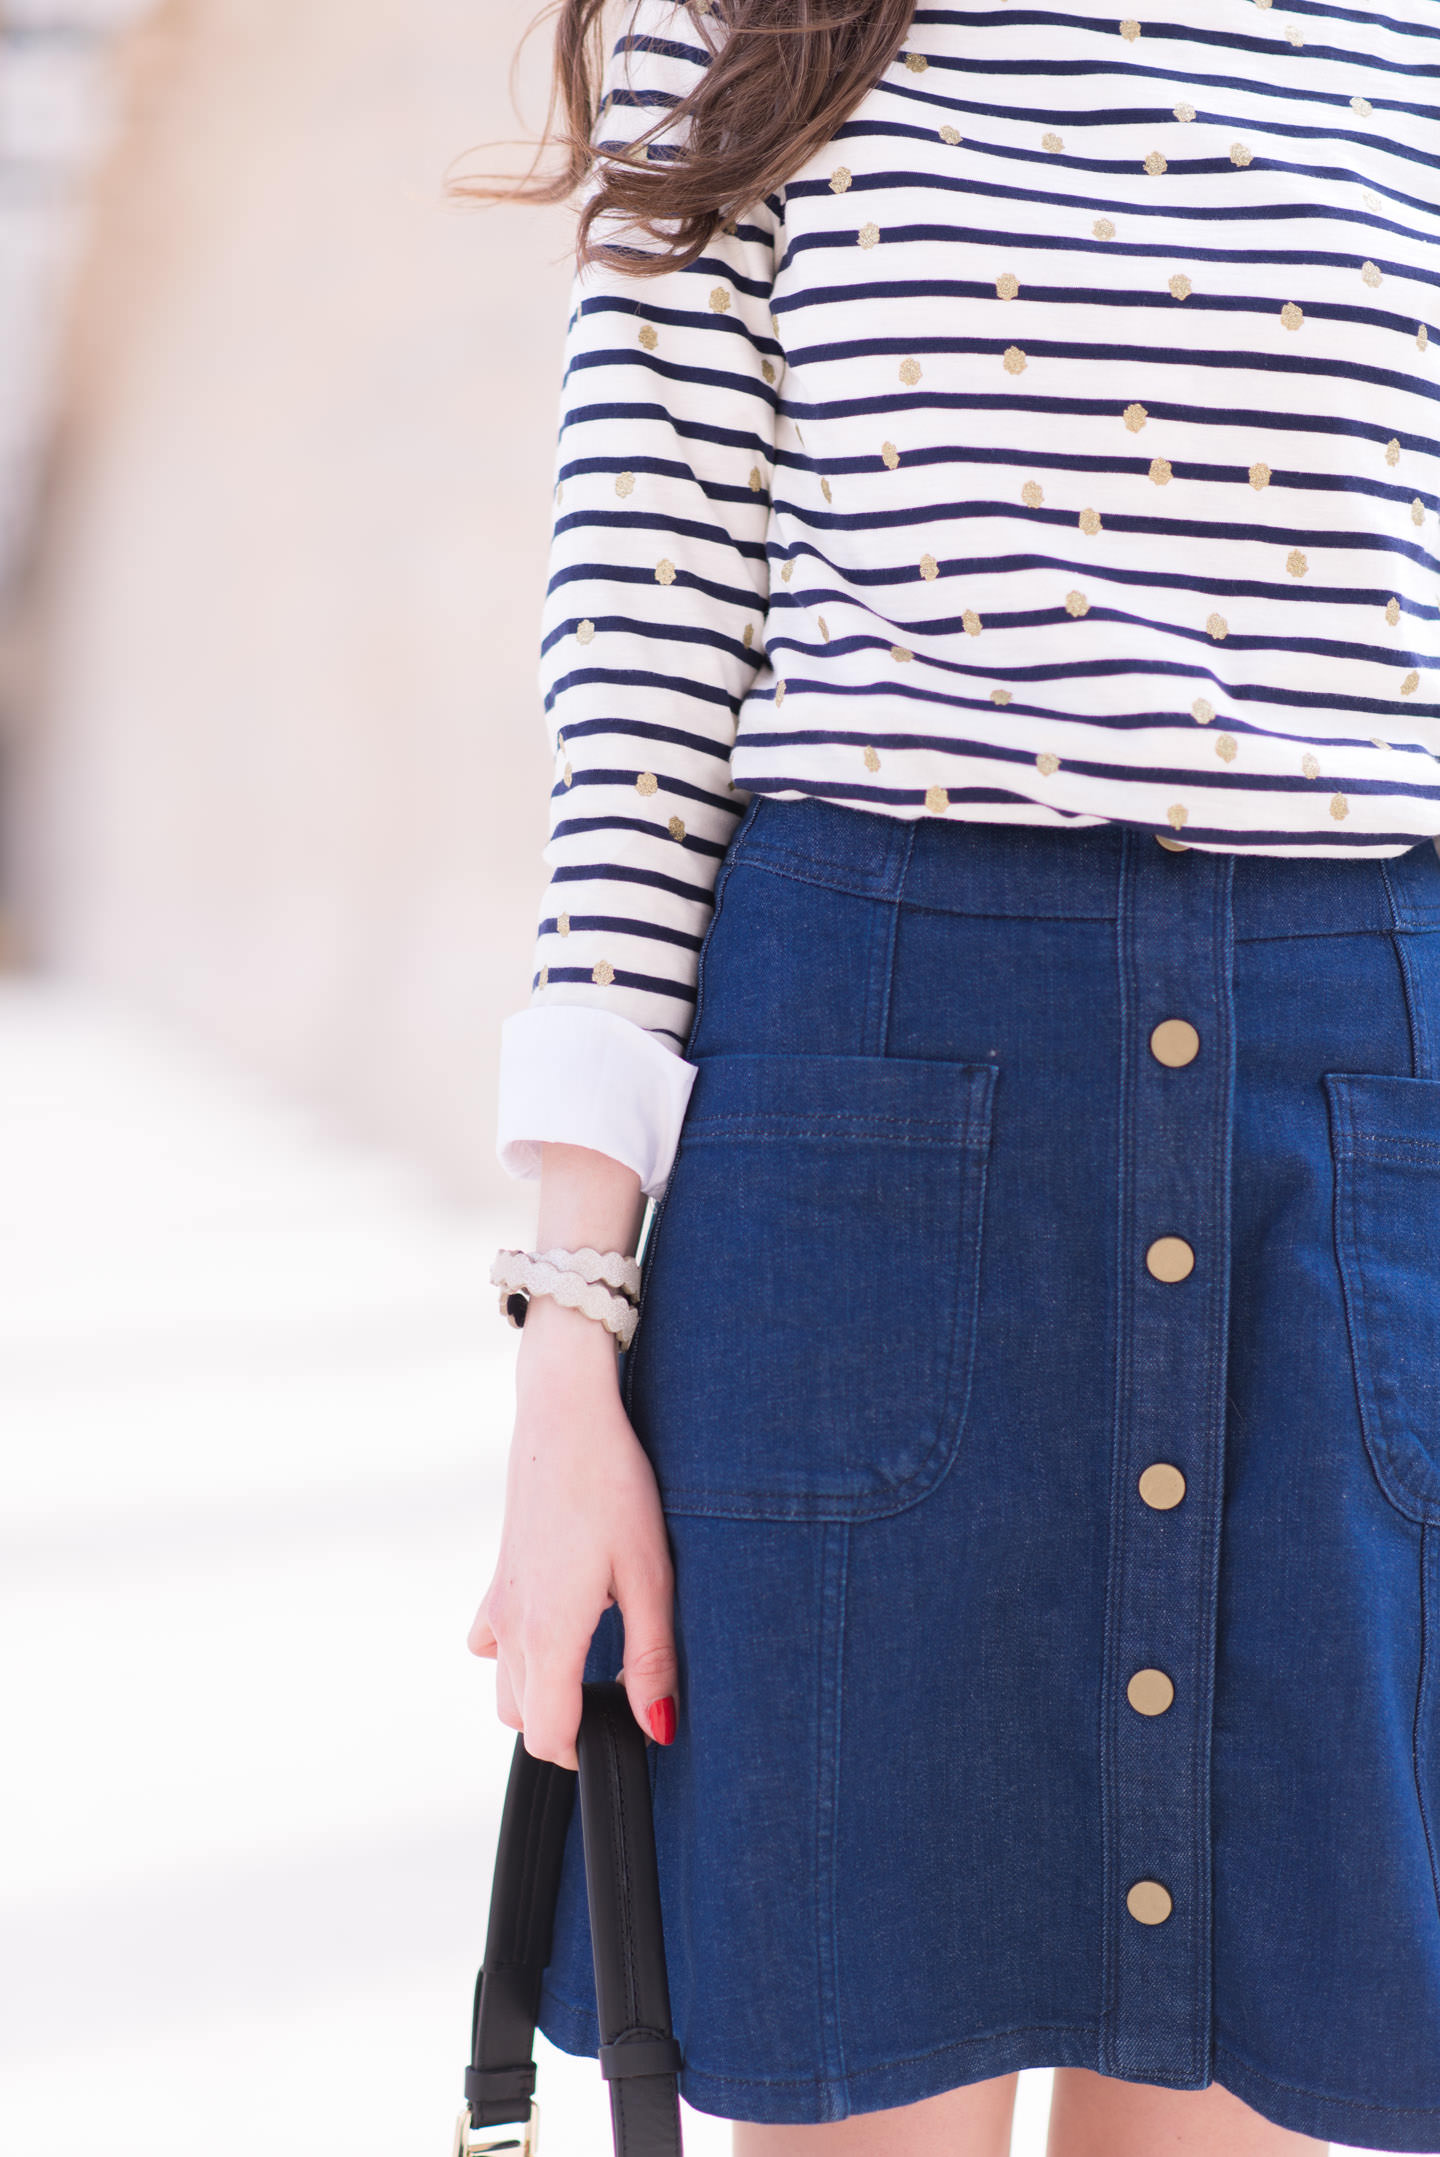 Blog-Mode-And-The-City-Looks-Le-Printemps-en-Boden-8